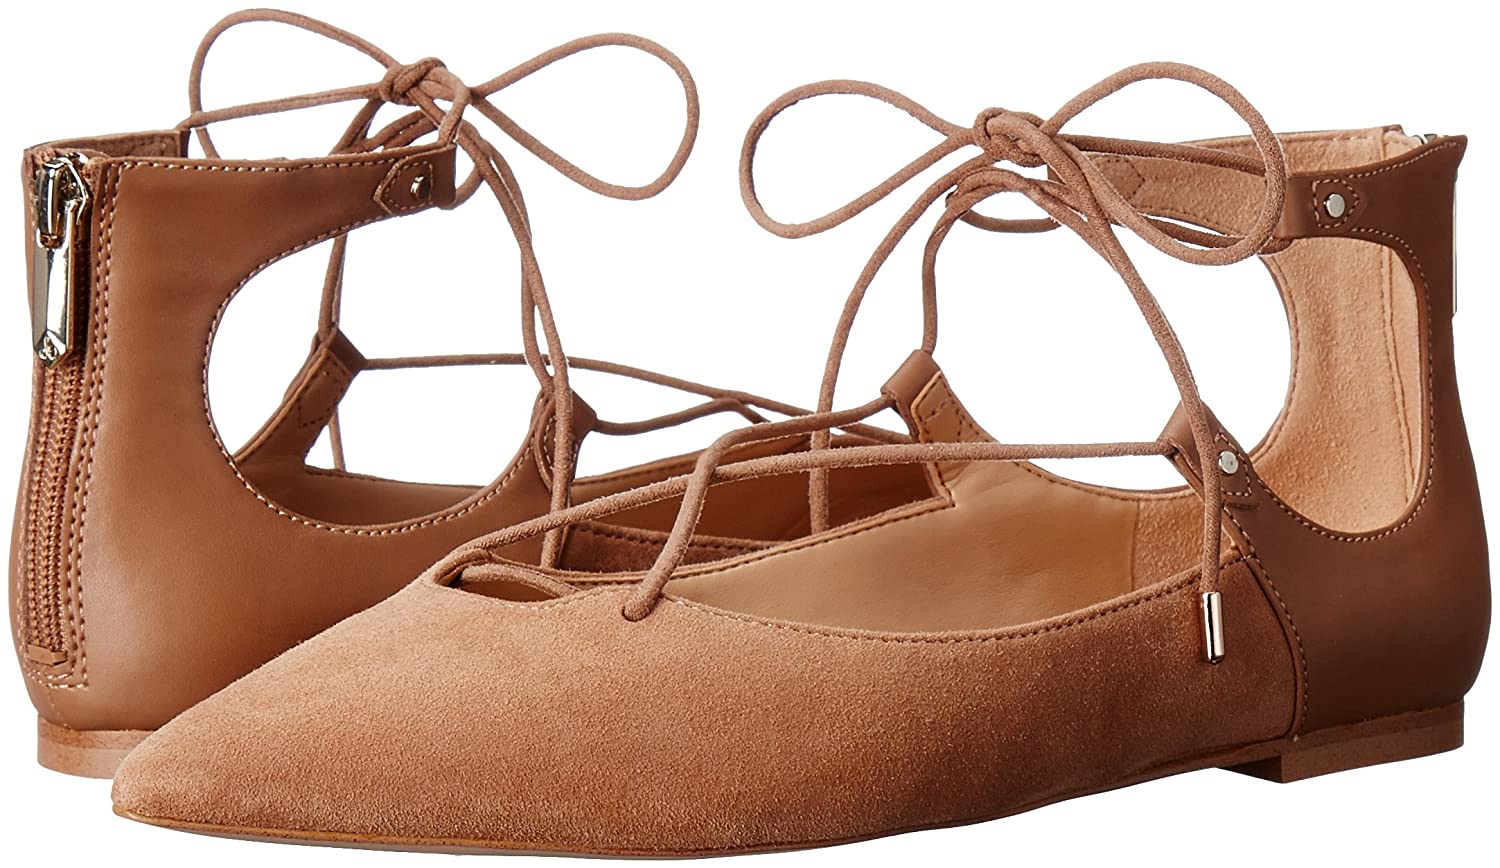 Sam Edelman Women's Rosie Pointed-Toe Flat B01AYK0P64 8 B(M) US|Golden Caramel